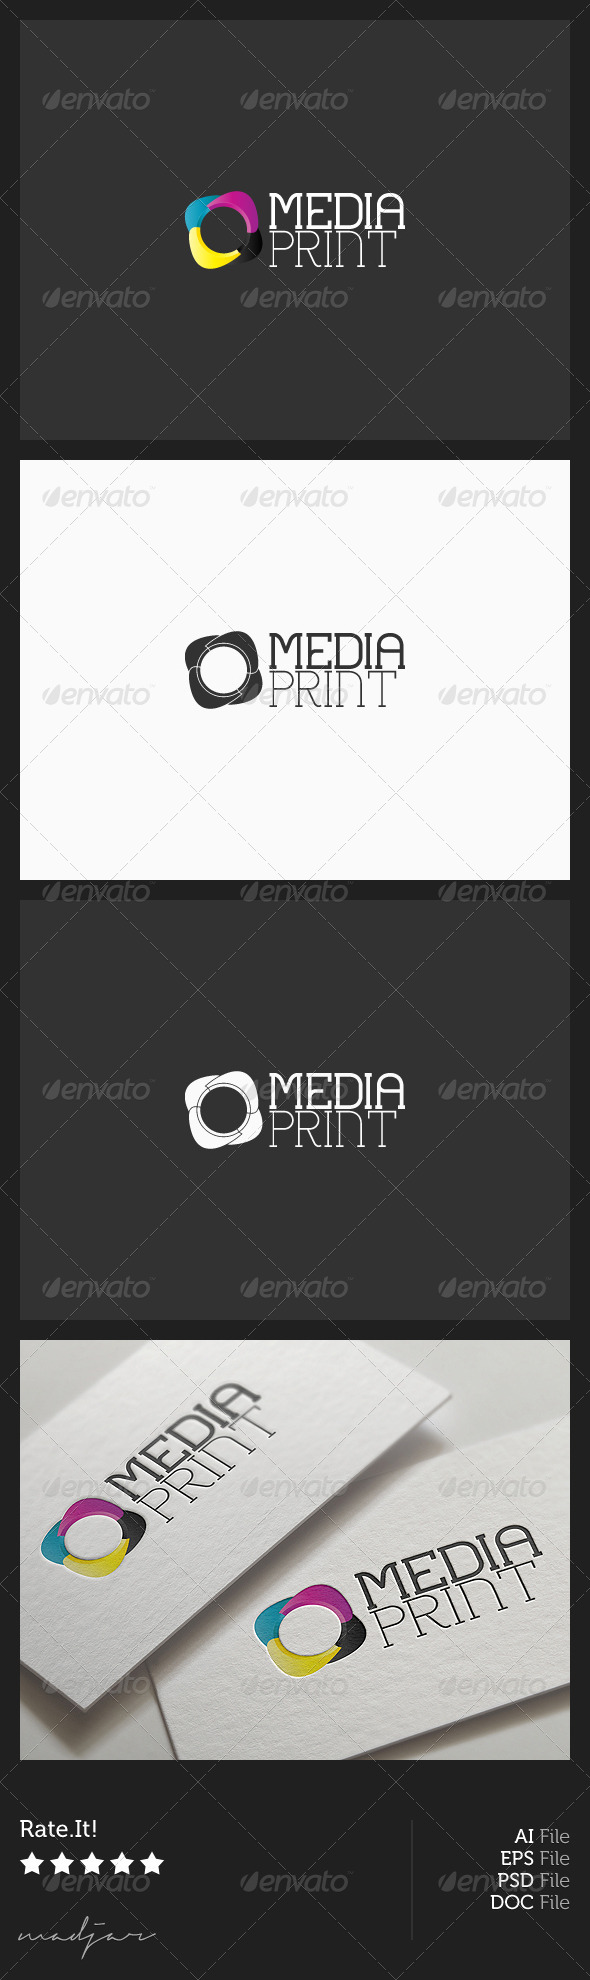 Media Print Logo - Vector Abstract